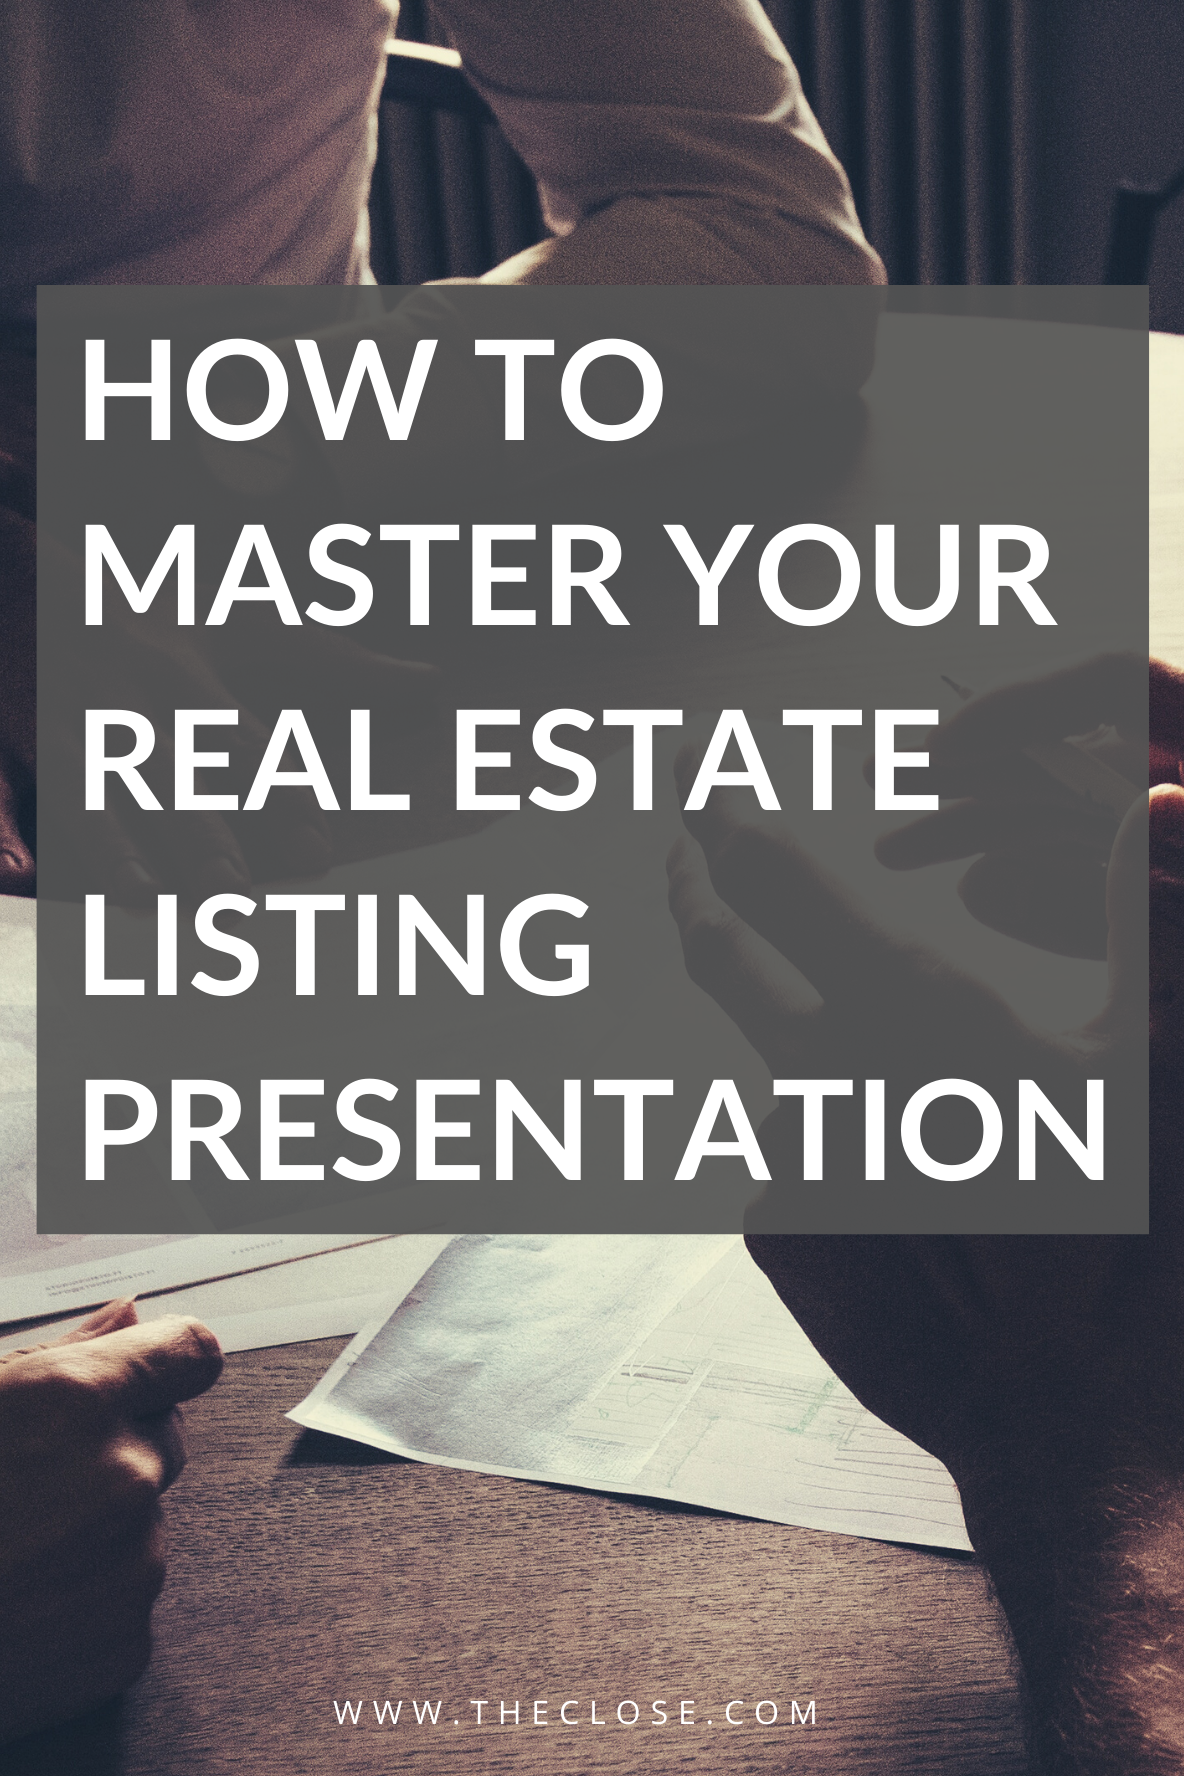 How to Master Your Real Estate Listing Presentation